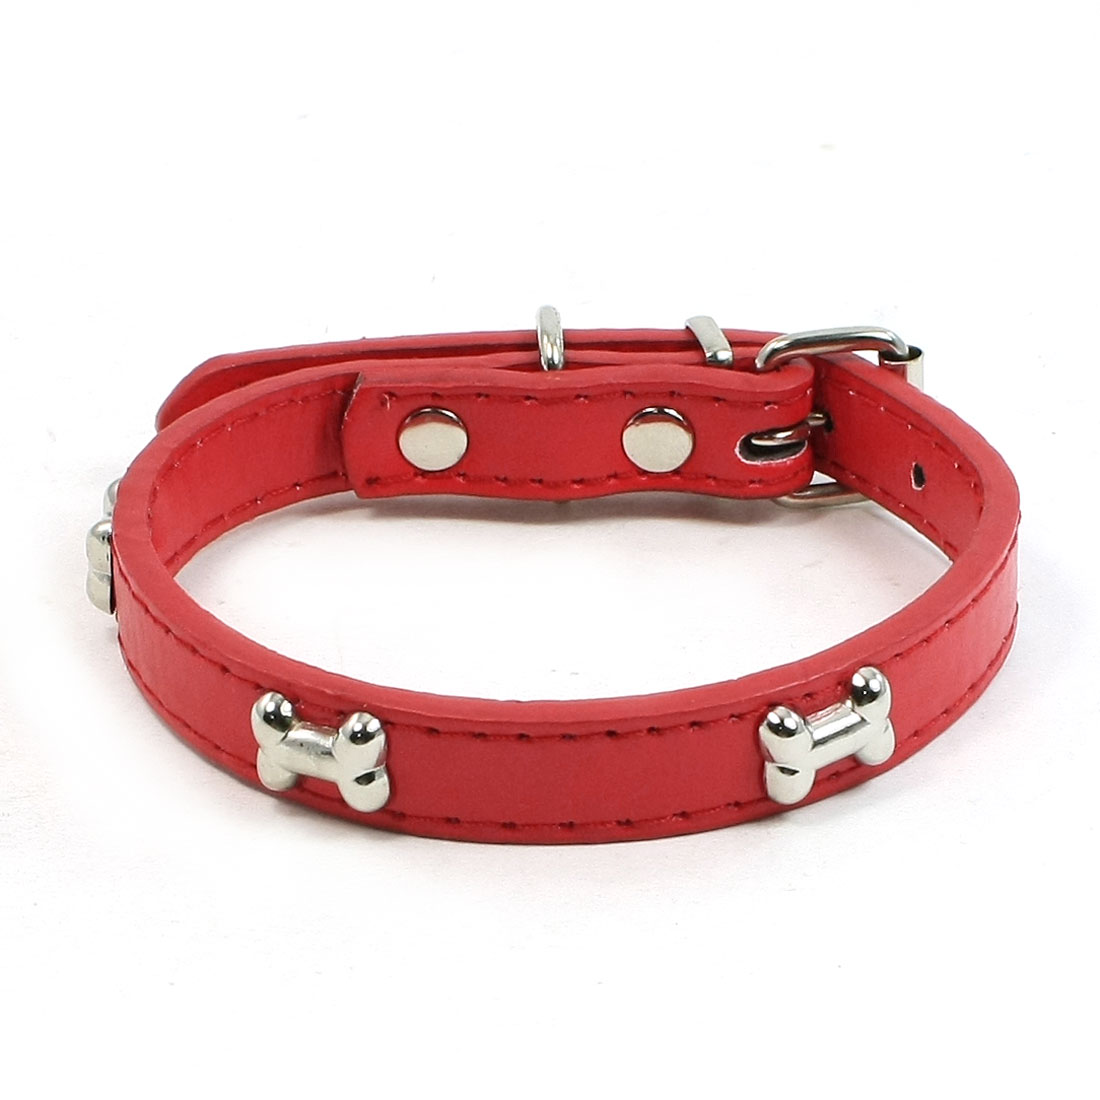 Metal Single Pin Buckle 1.5cm Wide Bone Detail Faux Leather Pet Dog Collar Red